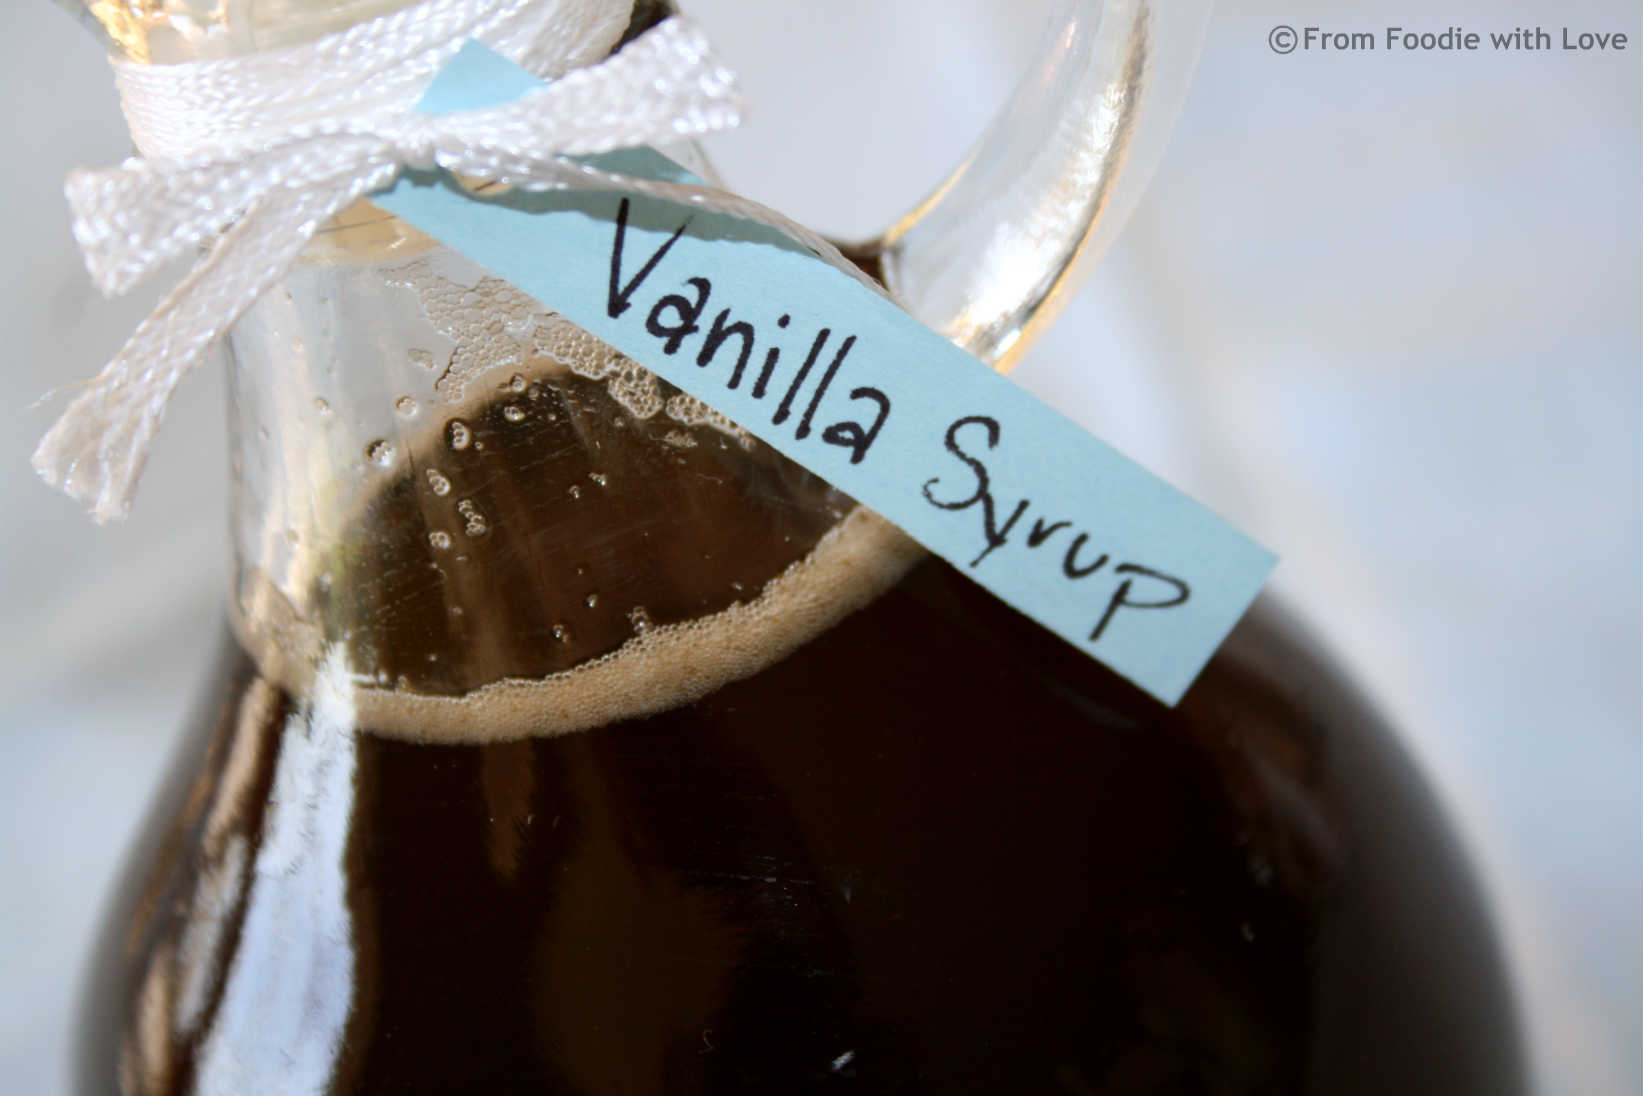 Vanilla Syrup in Bottle